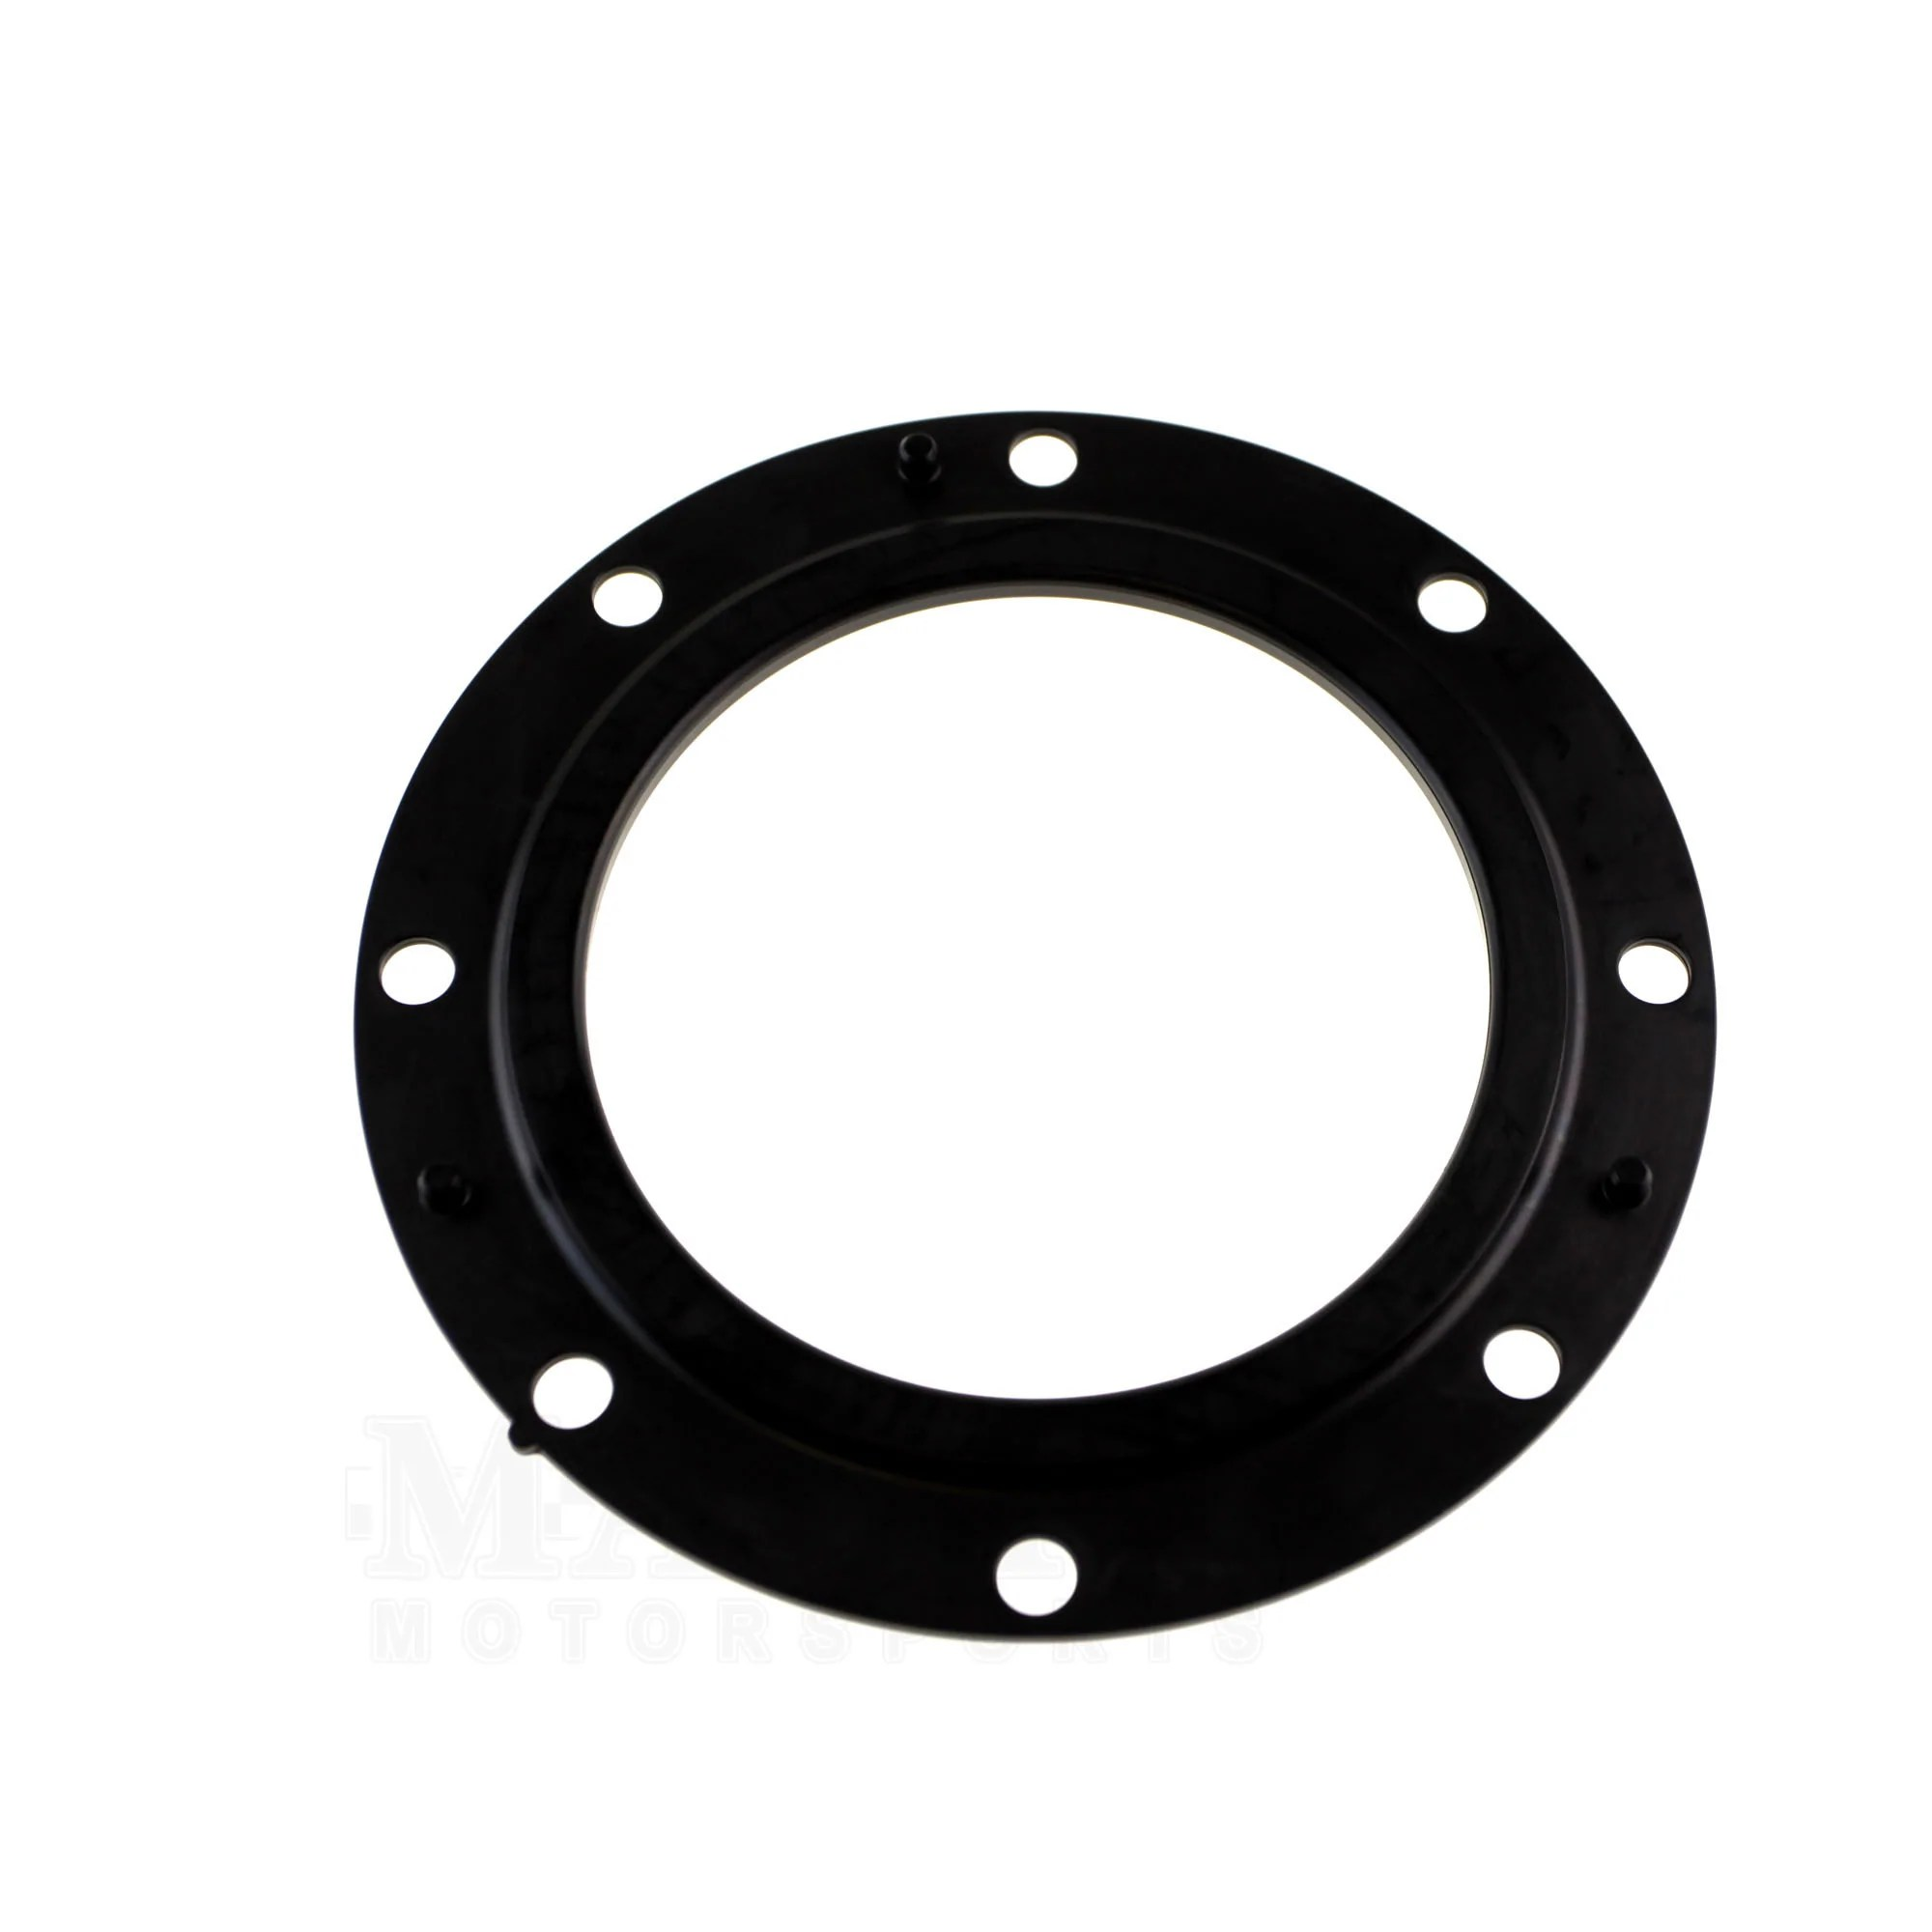 small resolution of subaru fuel tank gasket 2008 2014 wrx sti